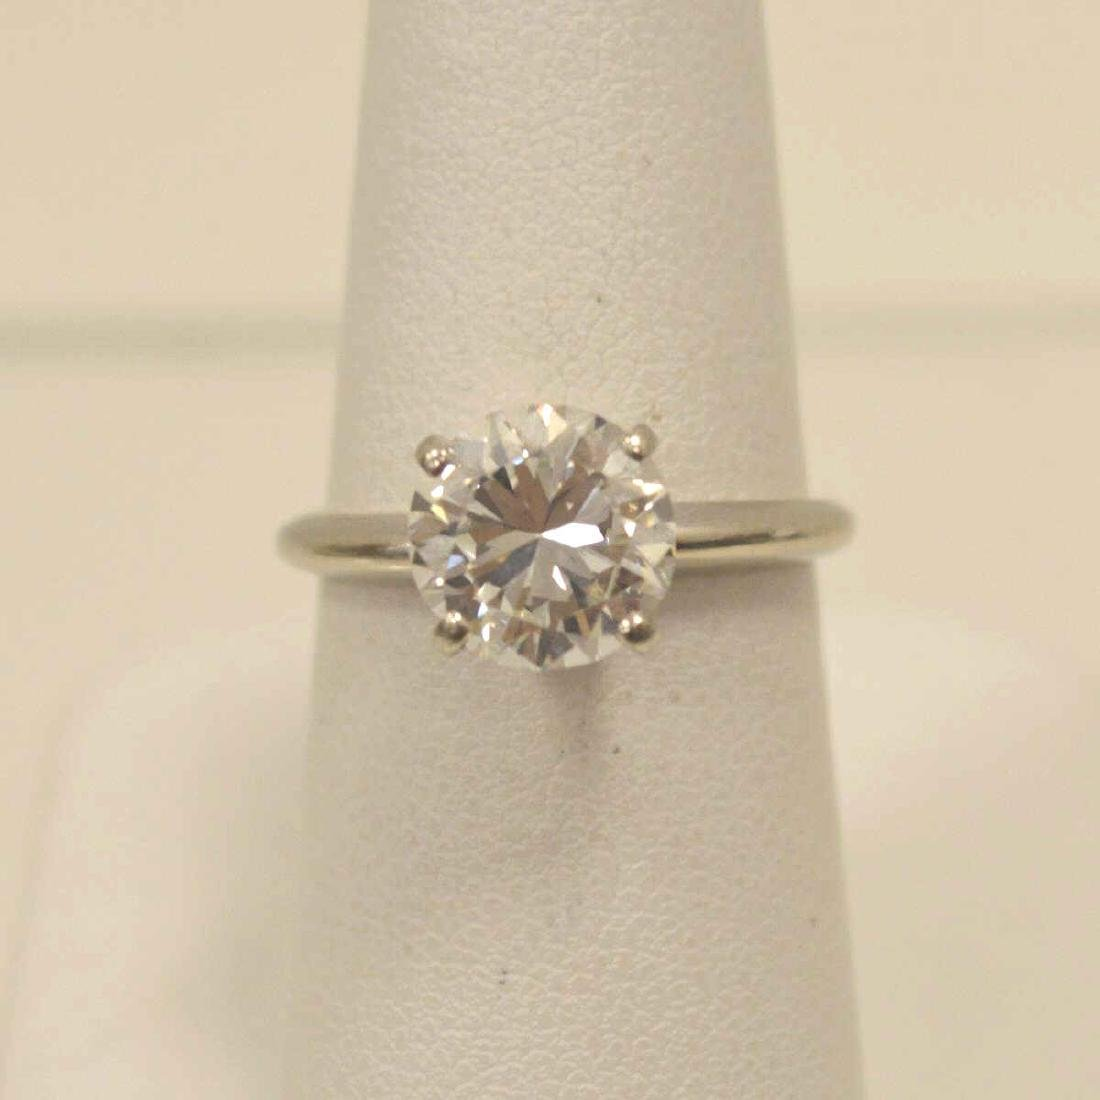 2.50ct. Diamond Solitaire Engagement Ring